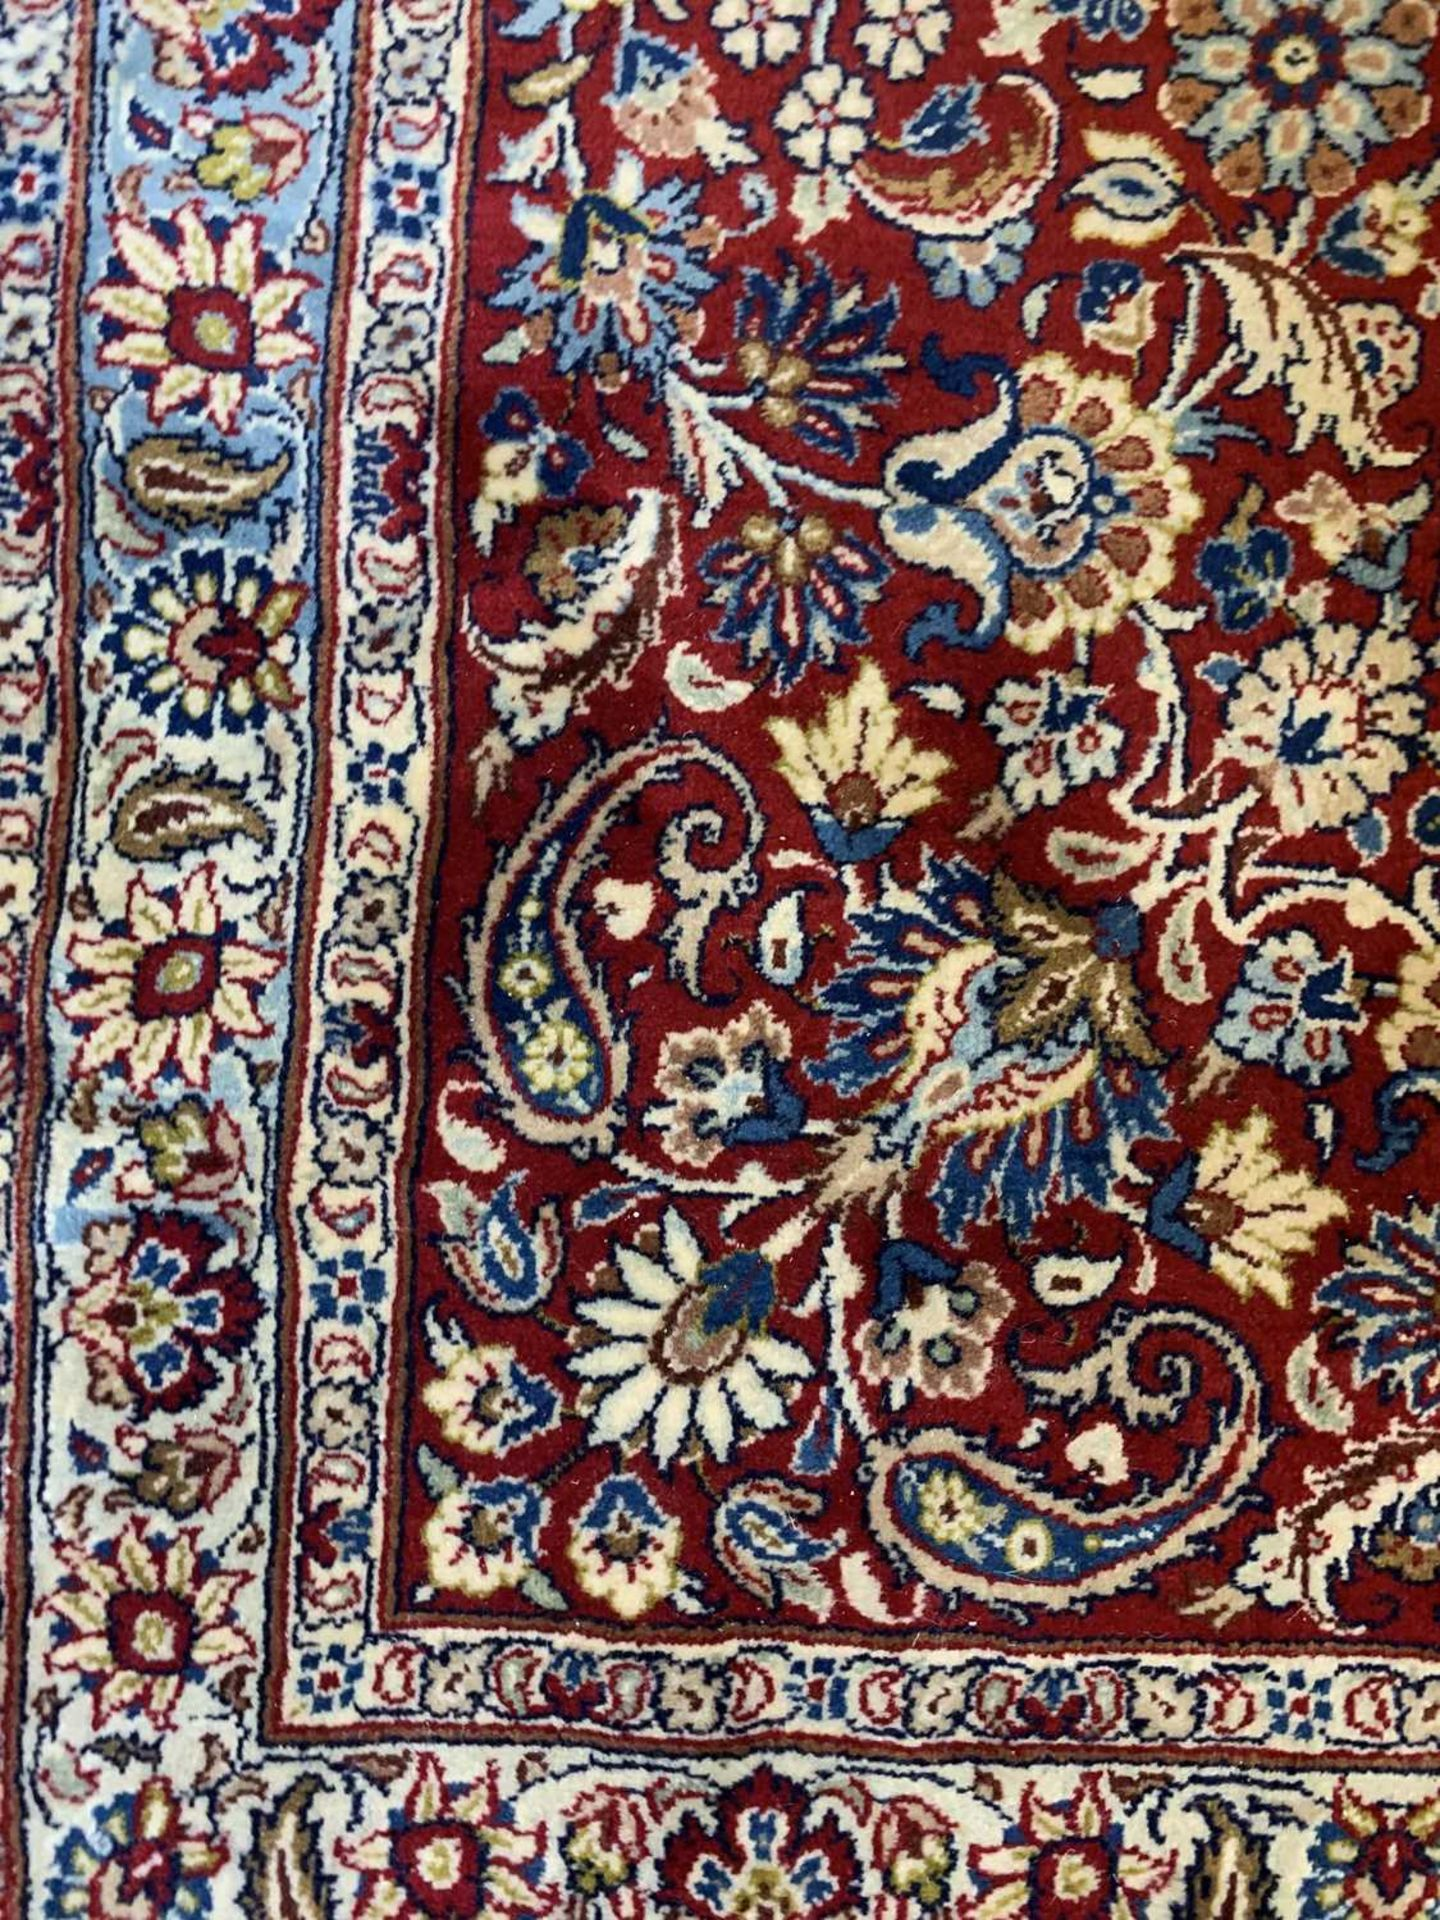 A large Persian Khorassan carpet, - Image 9 of 17